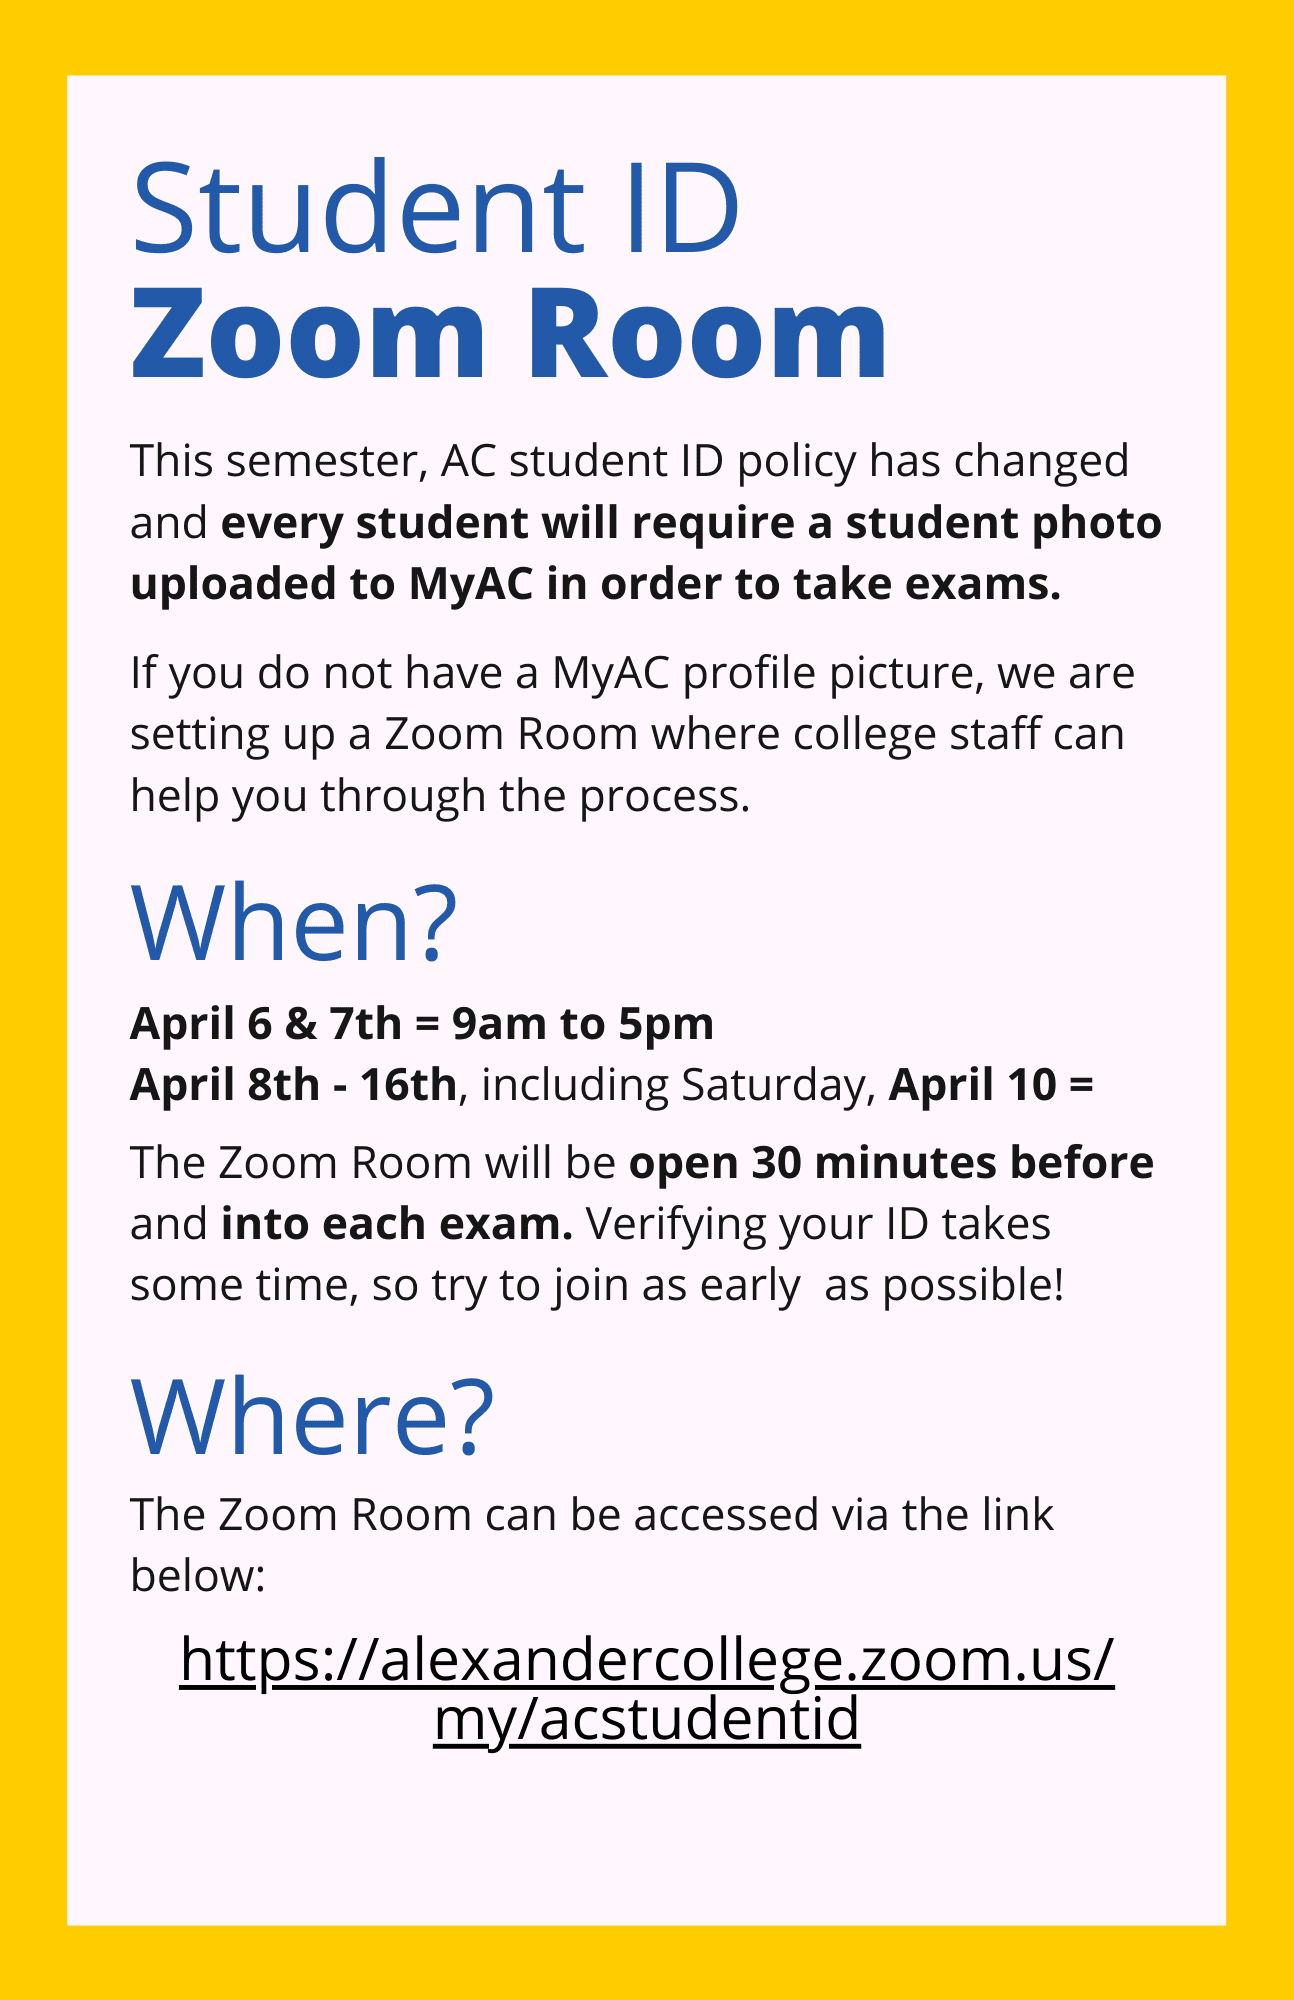 poster for student ID zoom room with dates and times and location